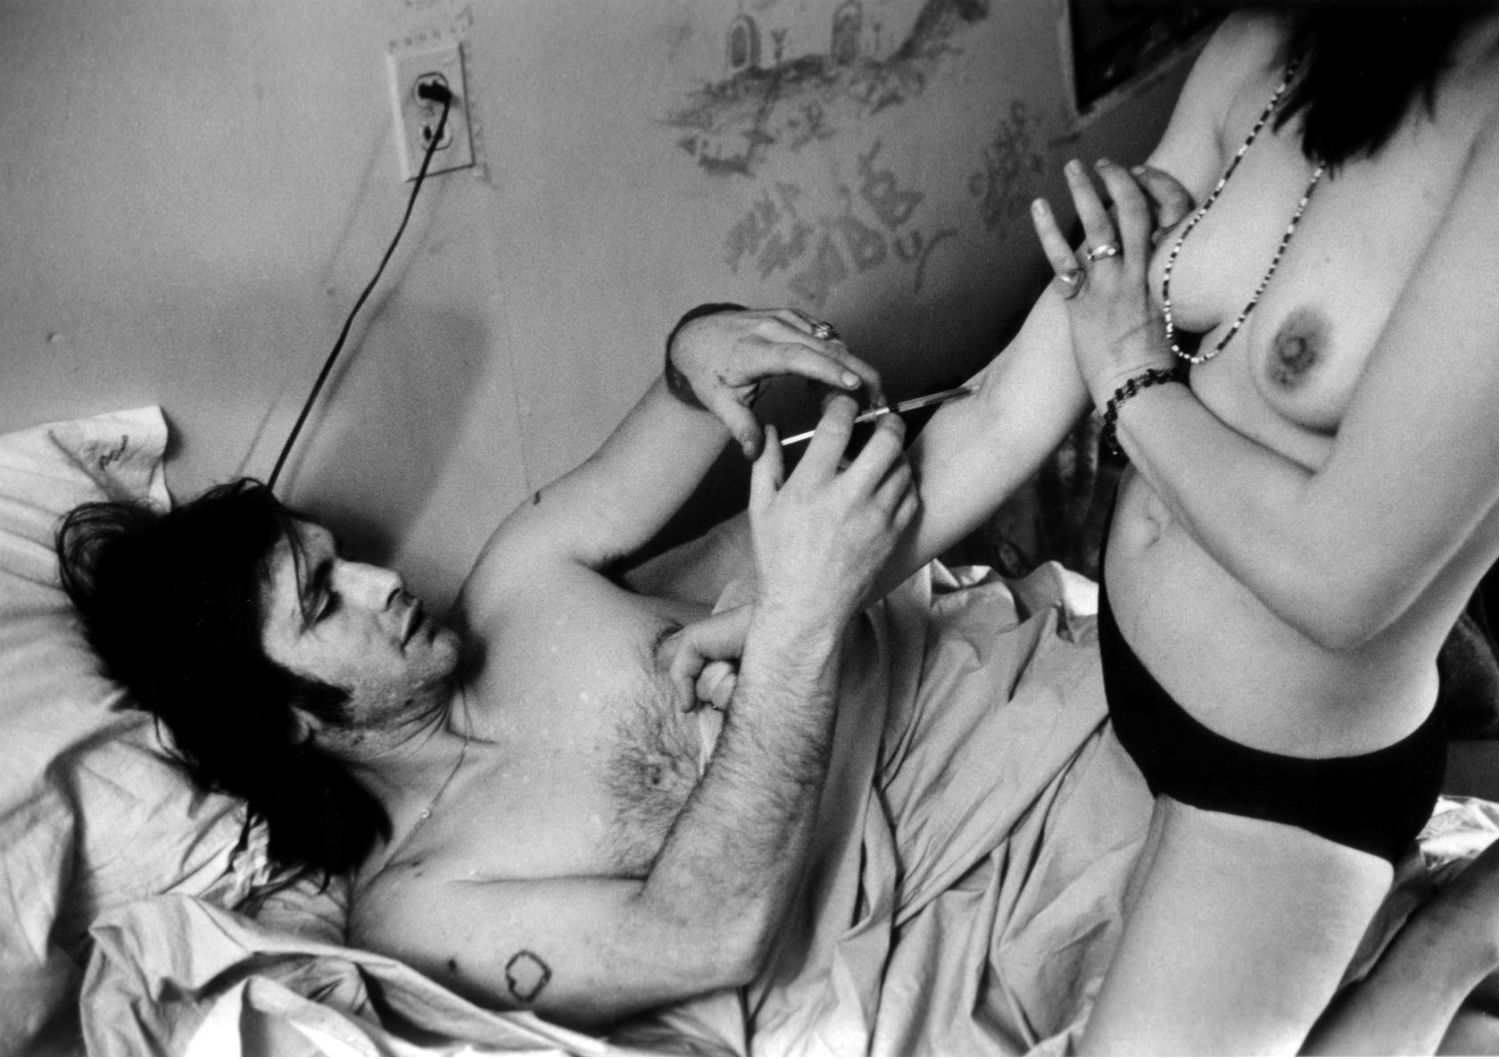 larry clark black white photography drugs youth